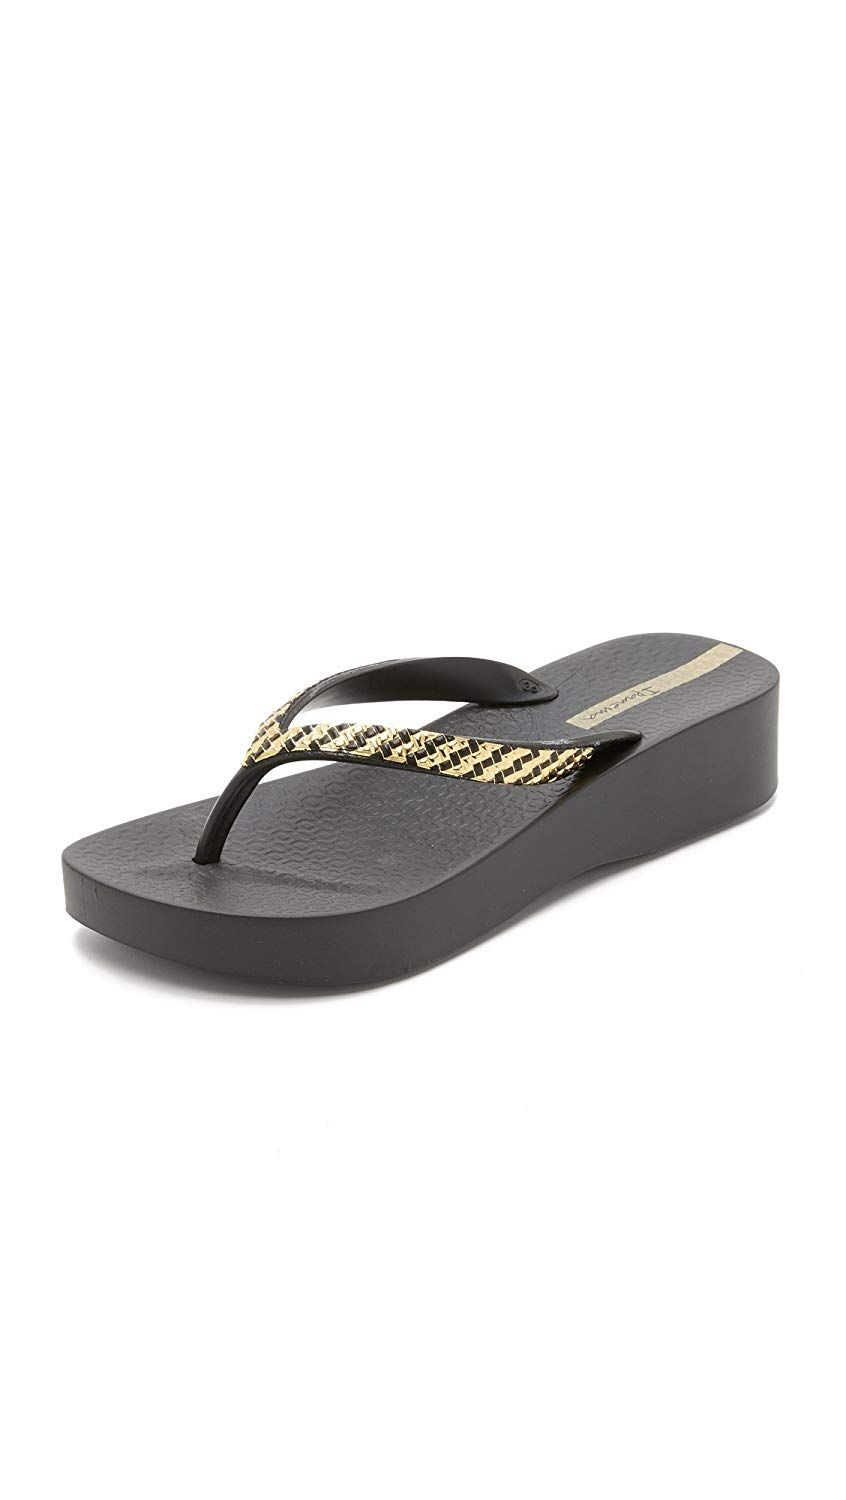 ca7fd6b06384 Ipanema Women s Mesh Plat Wedge Flip Flop    Wonderful of your presence to  have dropped by to see the image. (This is an affiliate link)   womensflipflops